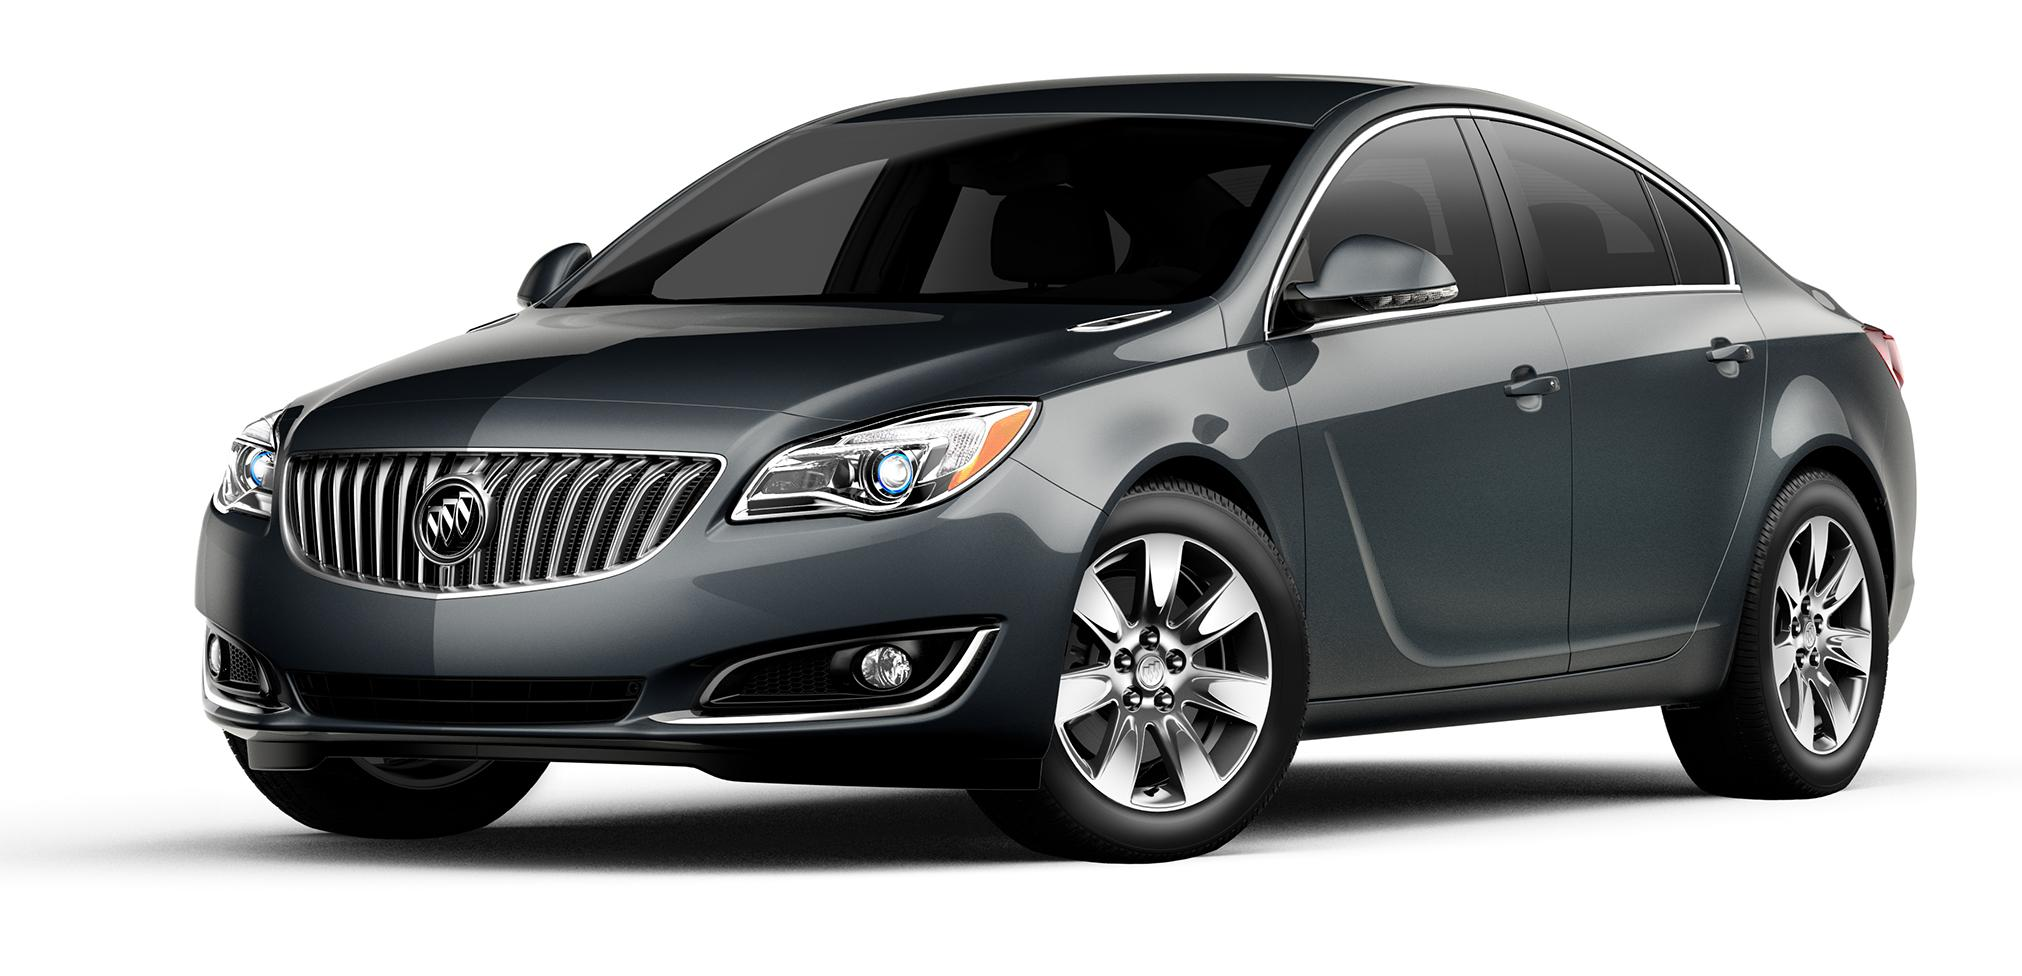 2017 Buick Regal Grey